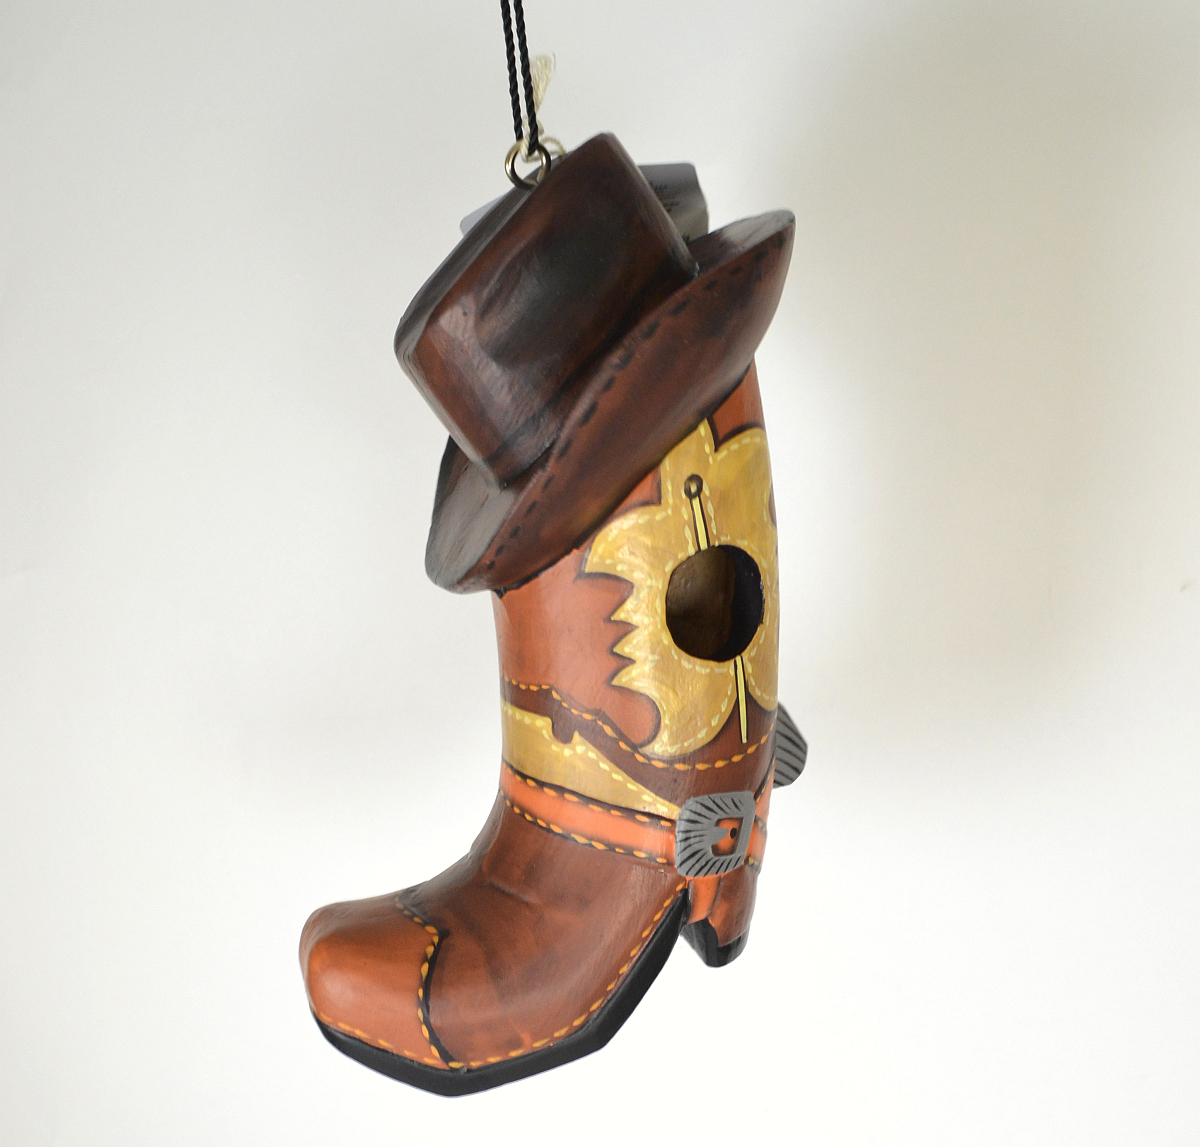 Americana Cowboy Boot w/Hat Backyard Birdhouse